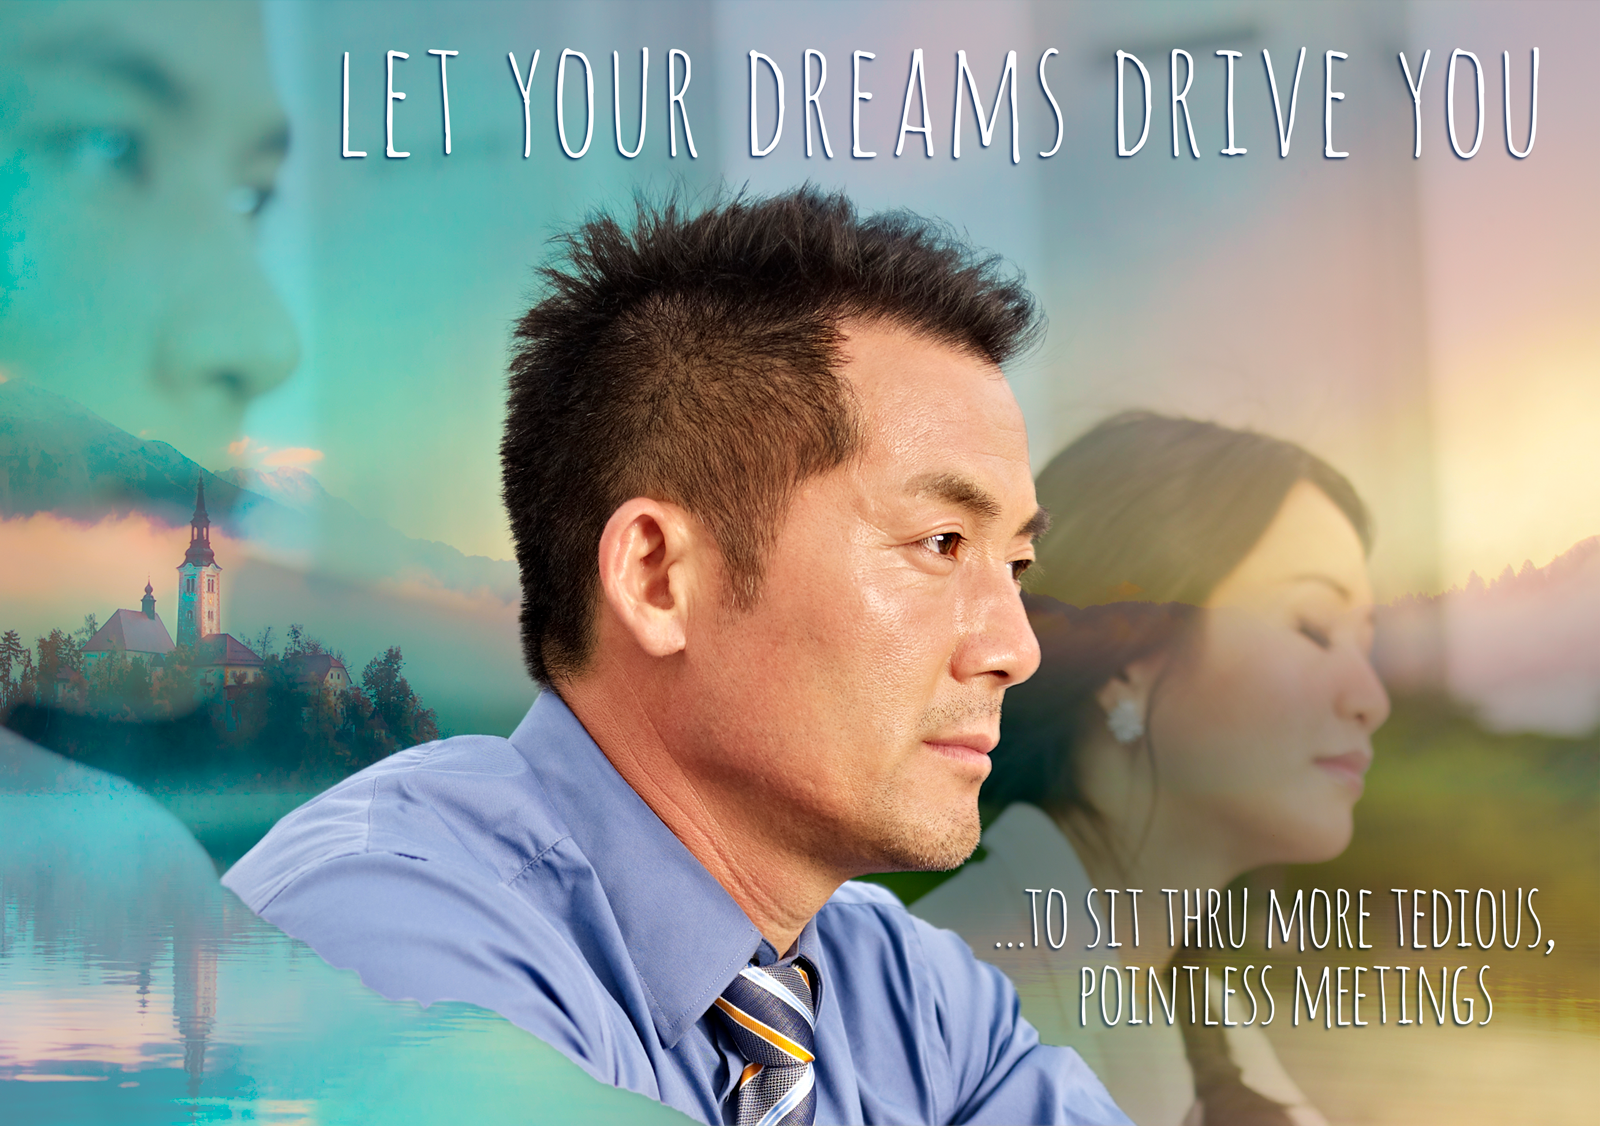 Let your dreams drive you